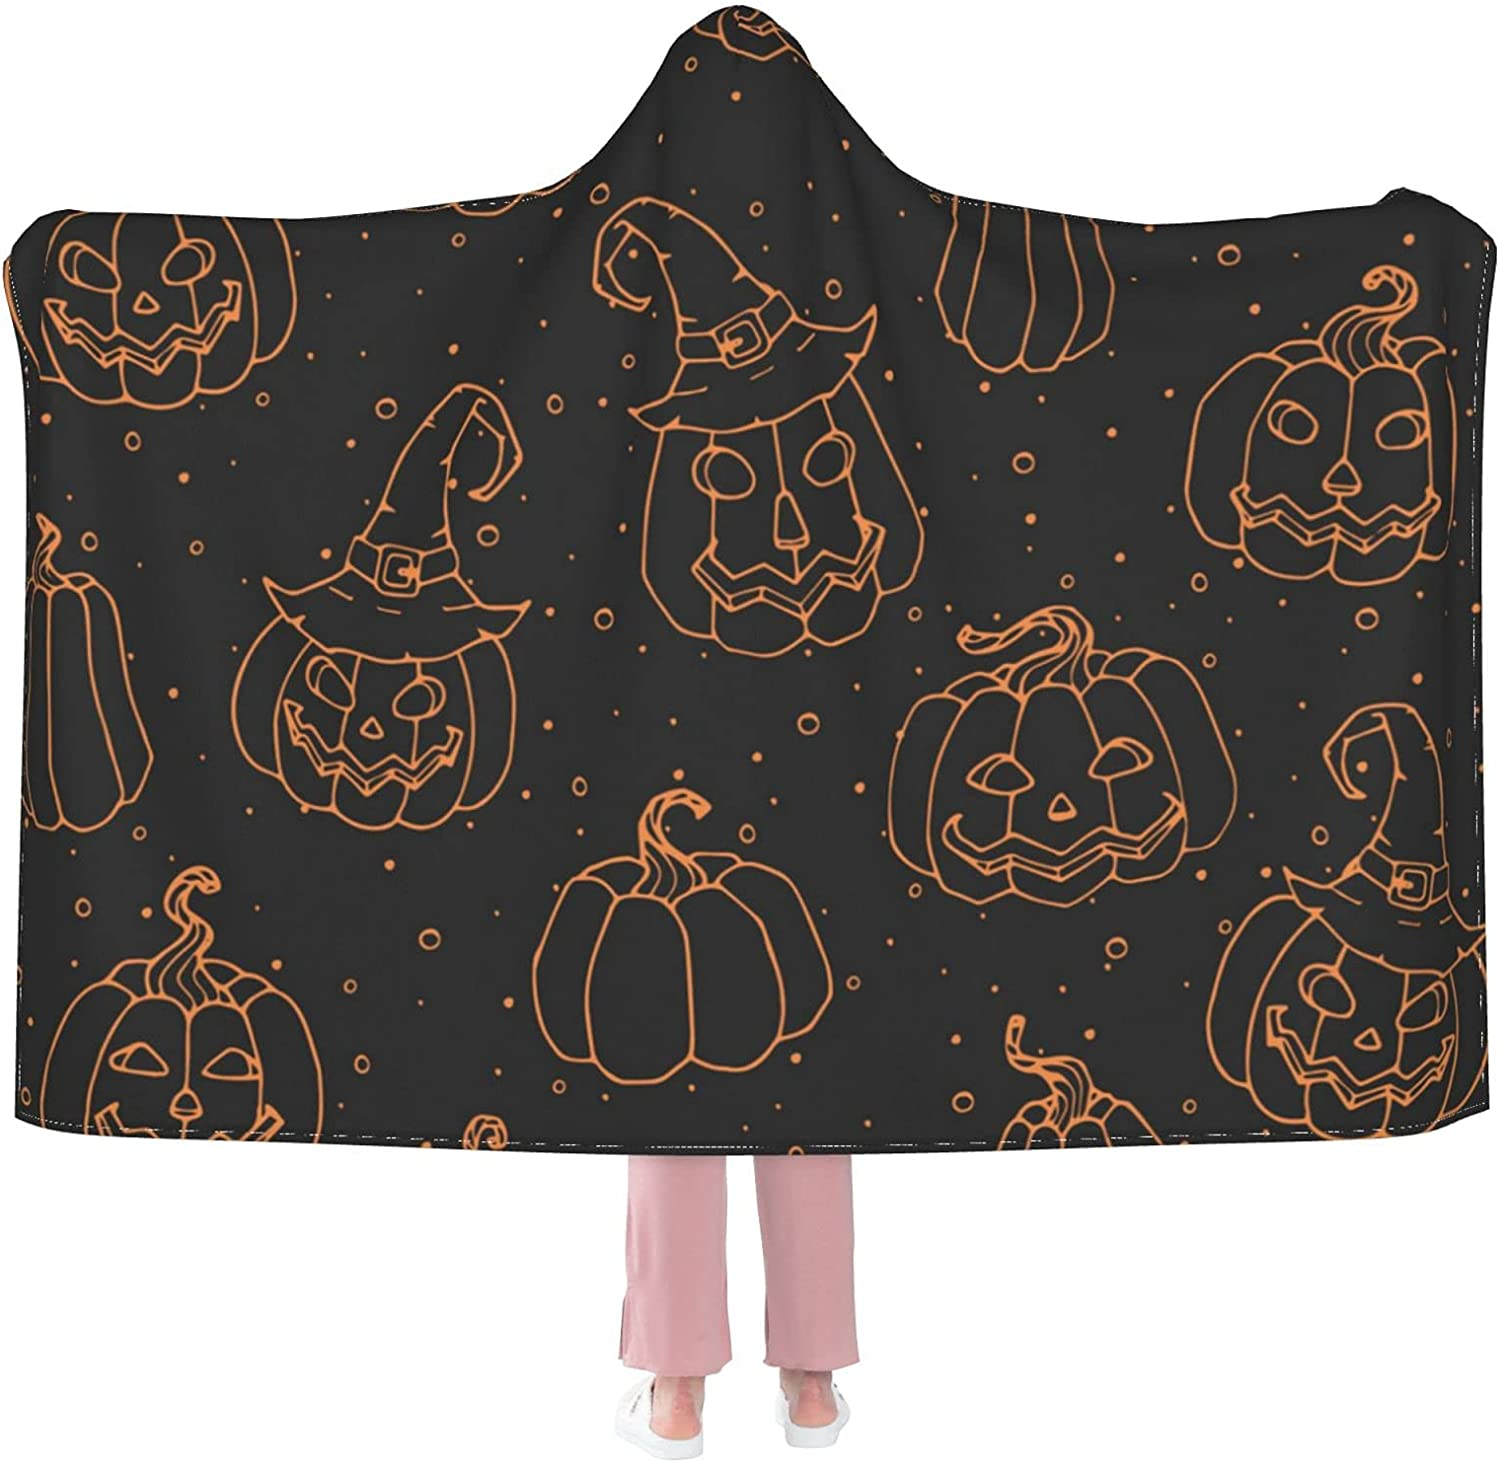 Miami Mall Sordiw Halloween Pumpkin Hooded Blanket S Soft Super for Max 44% OFF Flannel